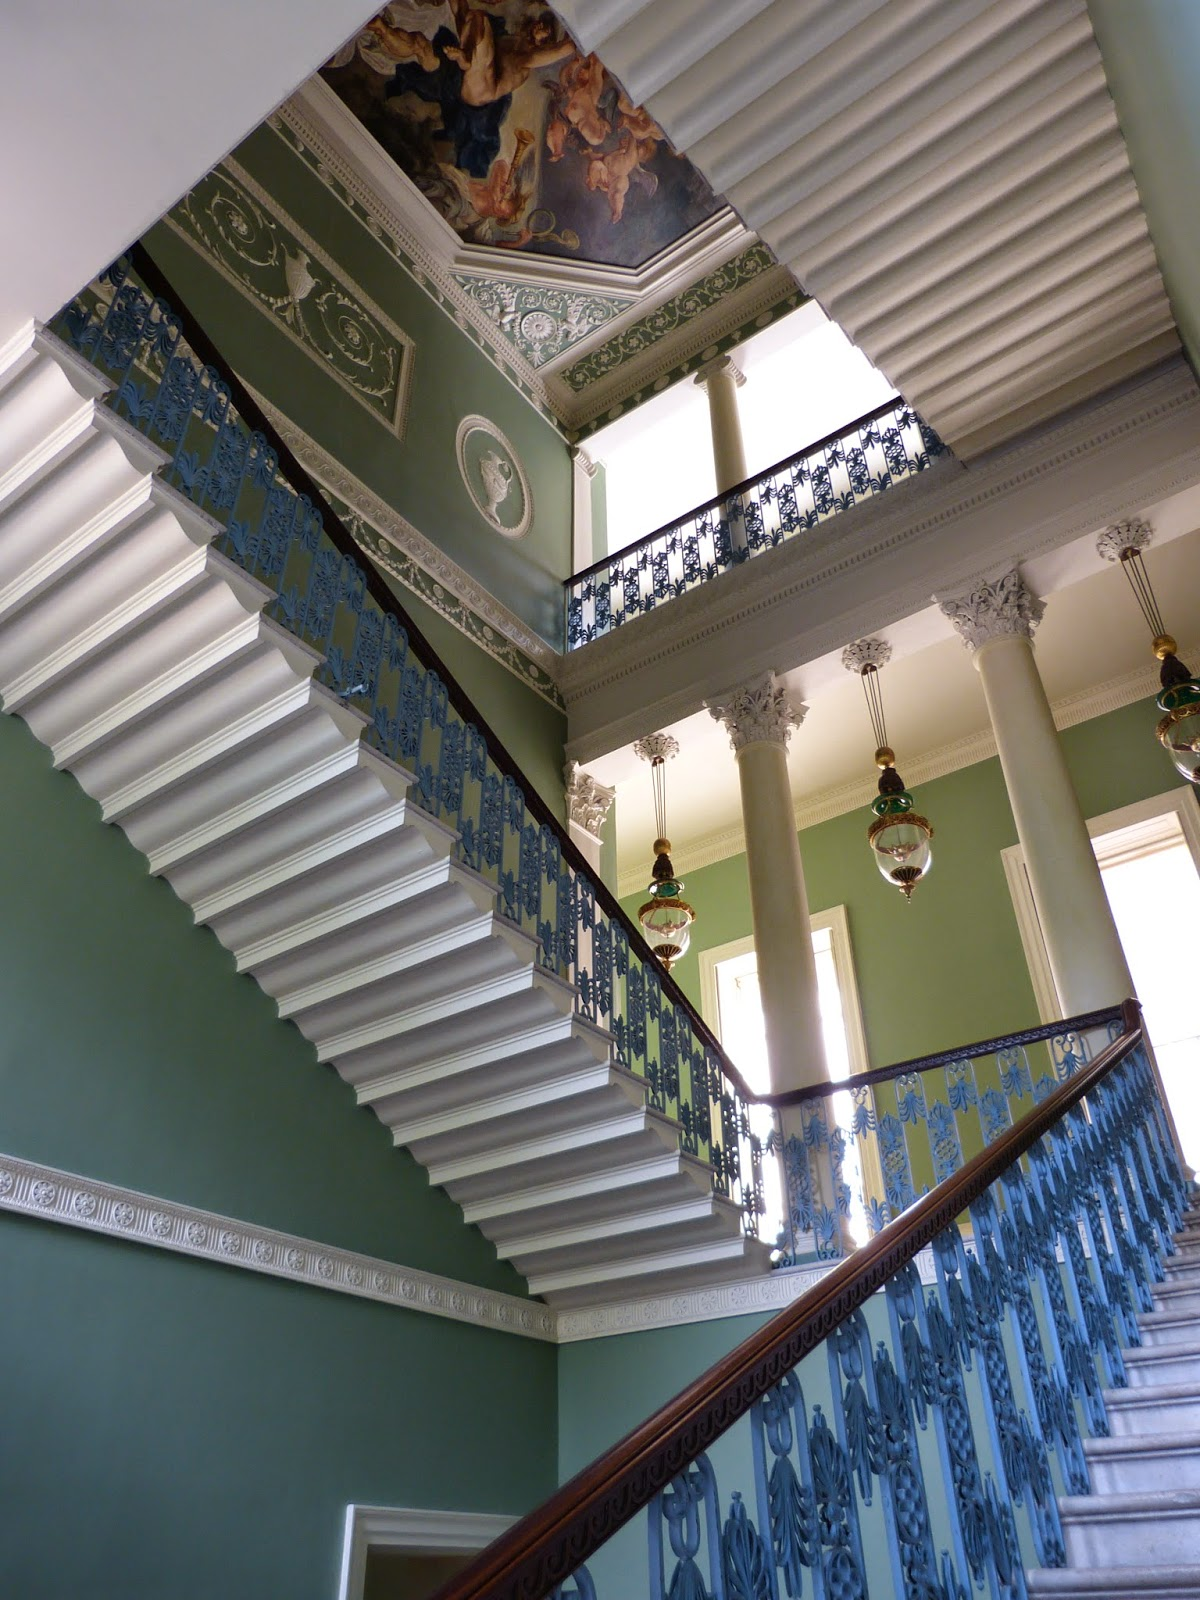 The Great Stair, Osterley